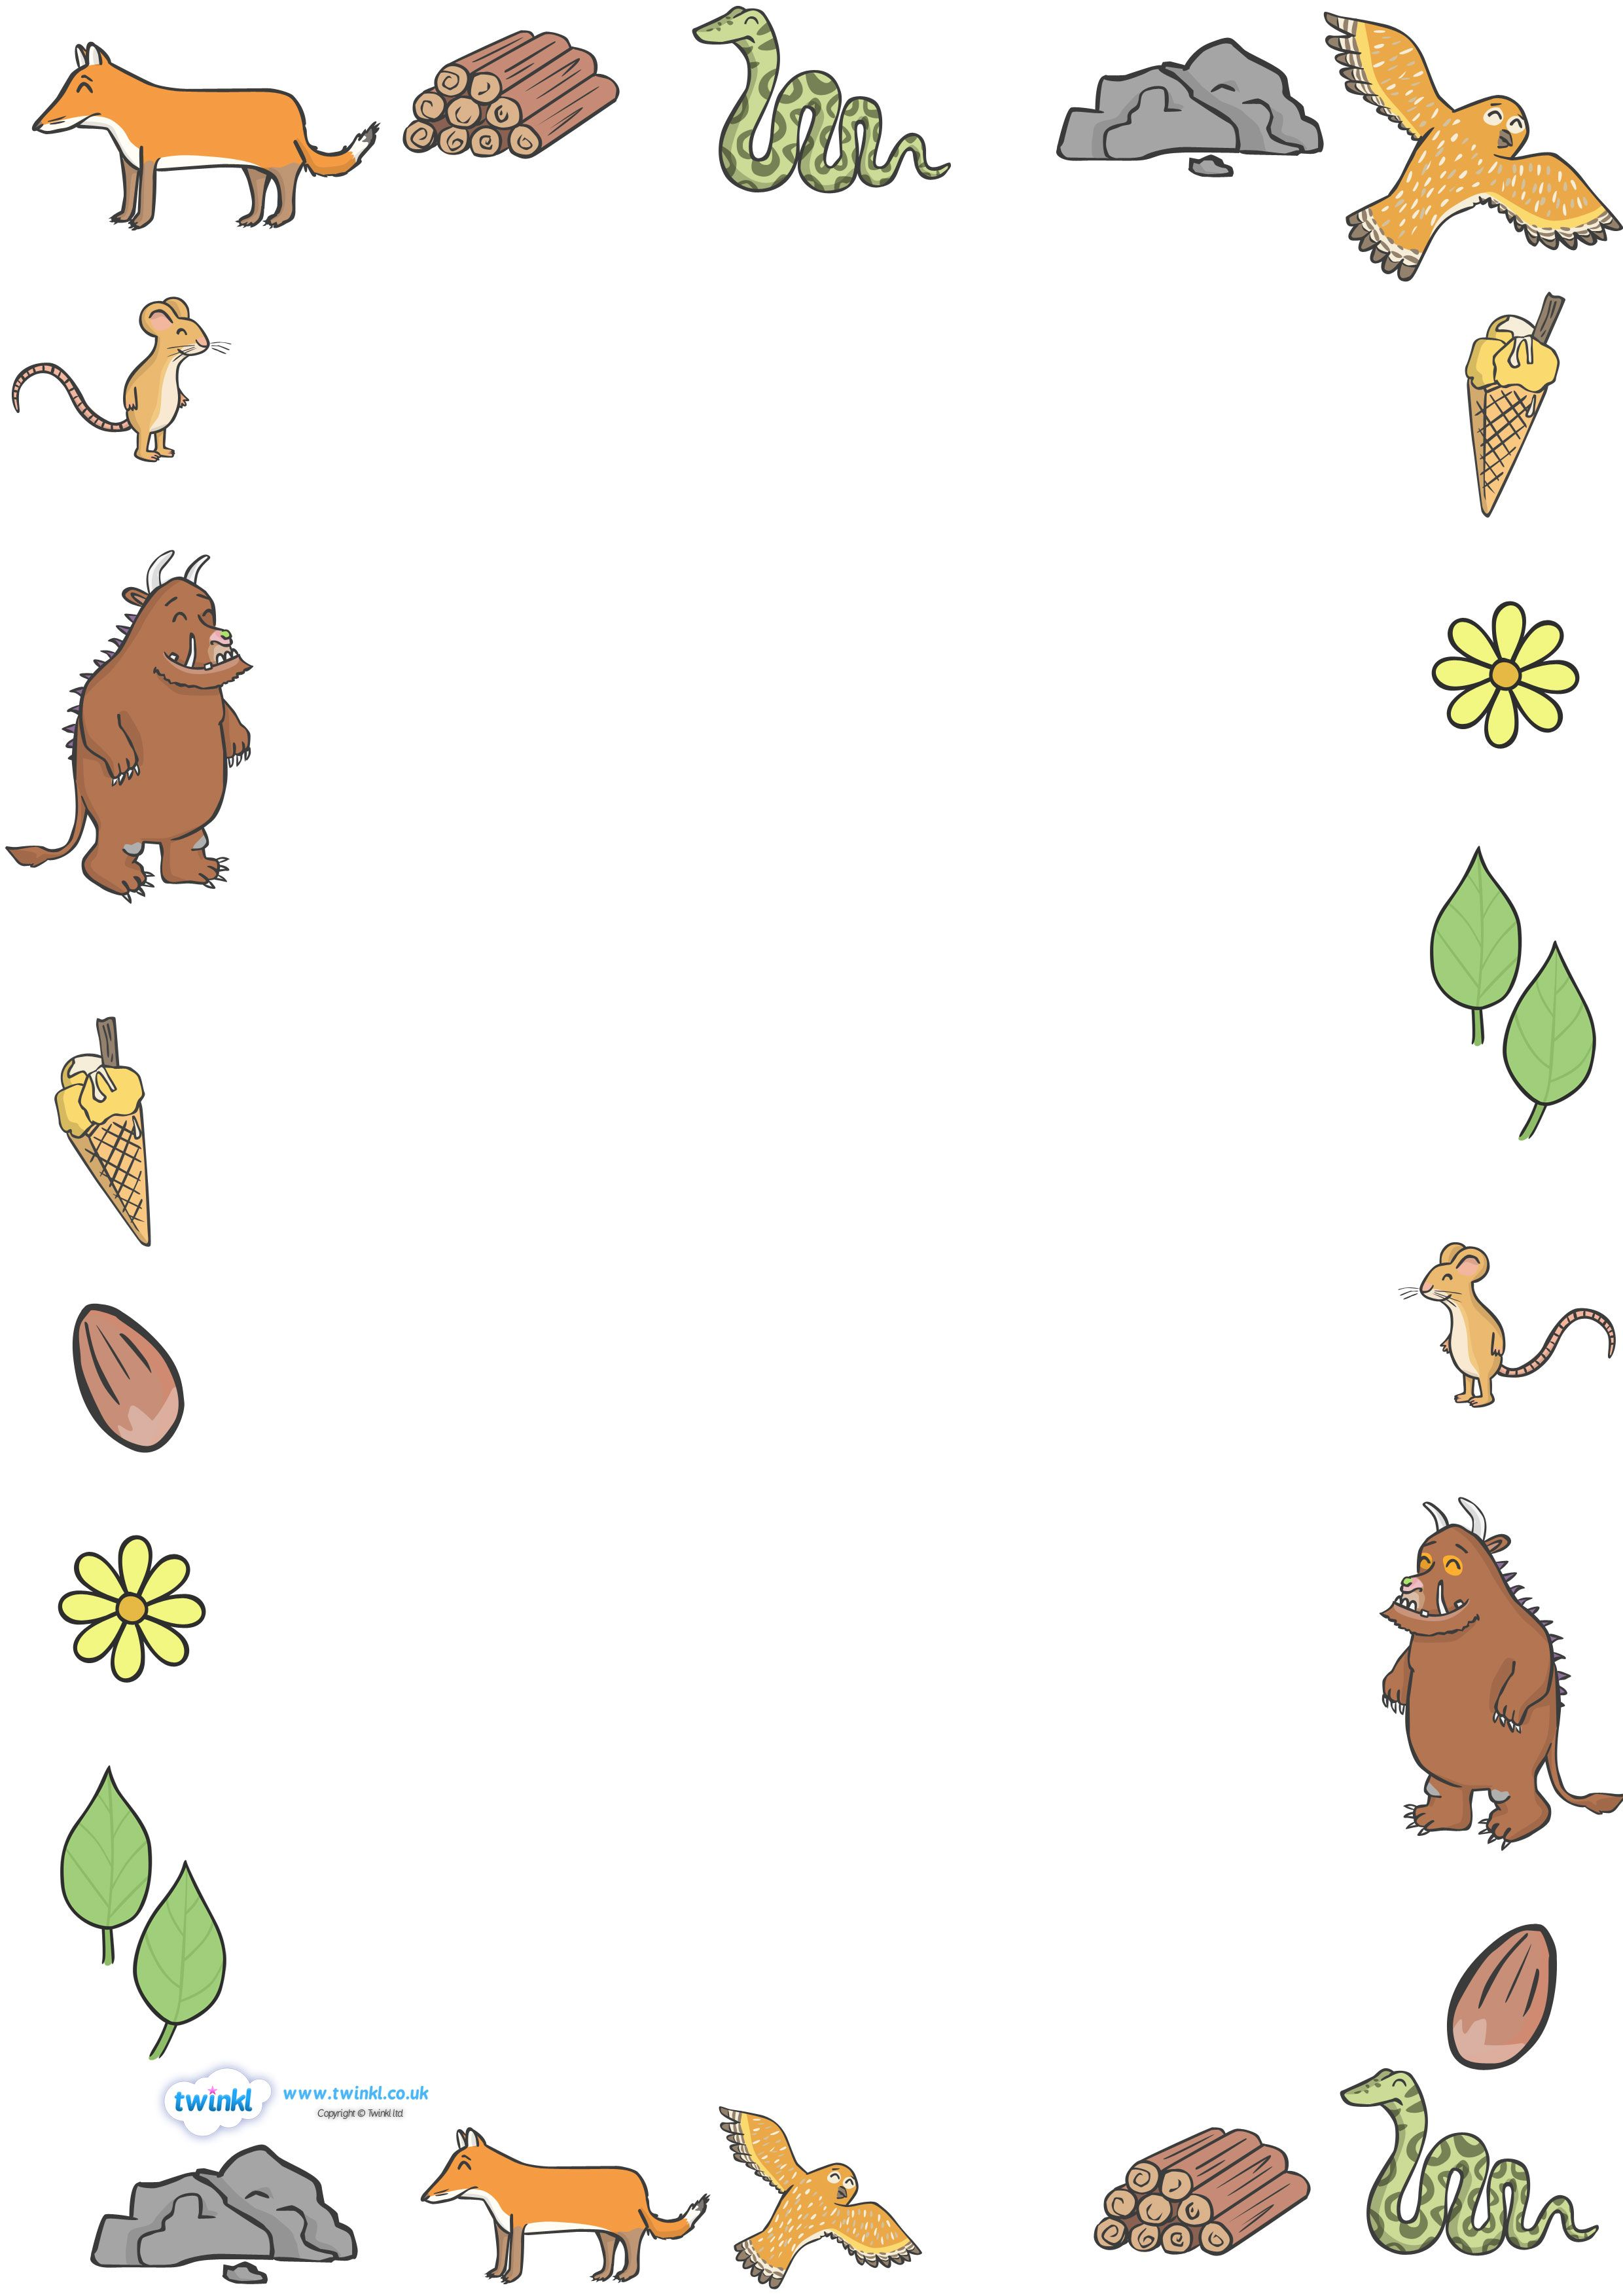 Twinkl Resources Gt Gt The Gruffalo Full Page Borders